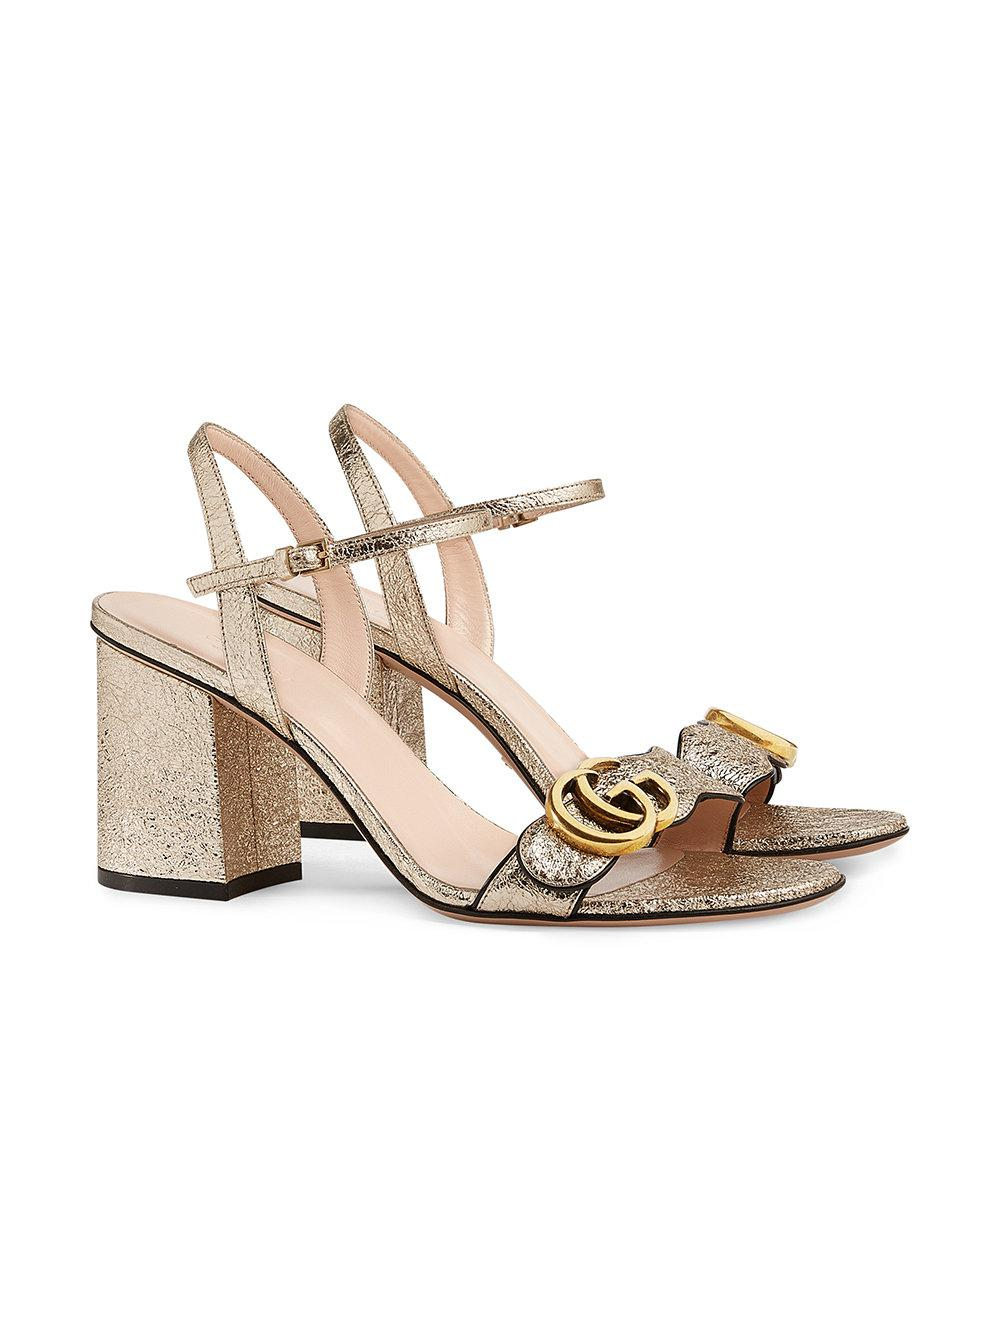 6c2b65c96b72d7 Lyst - Gucci Metallic (grey) Laminate Leather Mid-heel Sandal in Metallic -  Save 22%